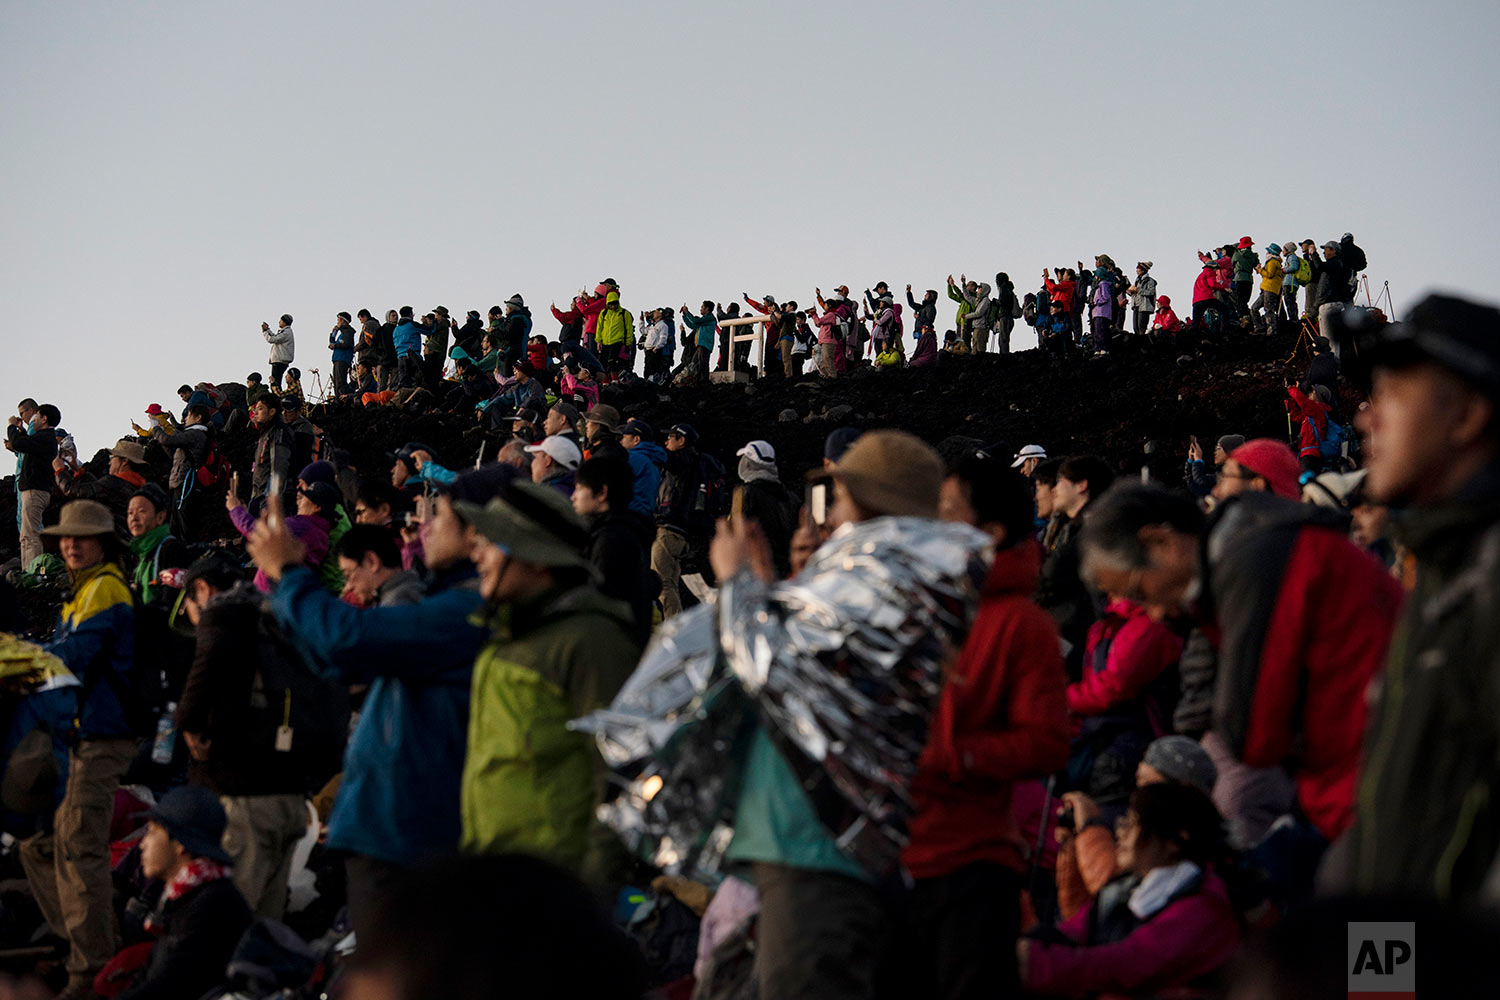 Hundreds of climbers watch the sunrise from the summit of Mount Fuji in Japan, Aug. 3, 2019. (AP Photo/Jae C. Hong)